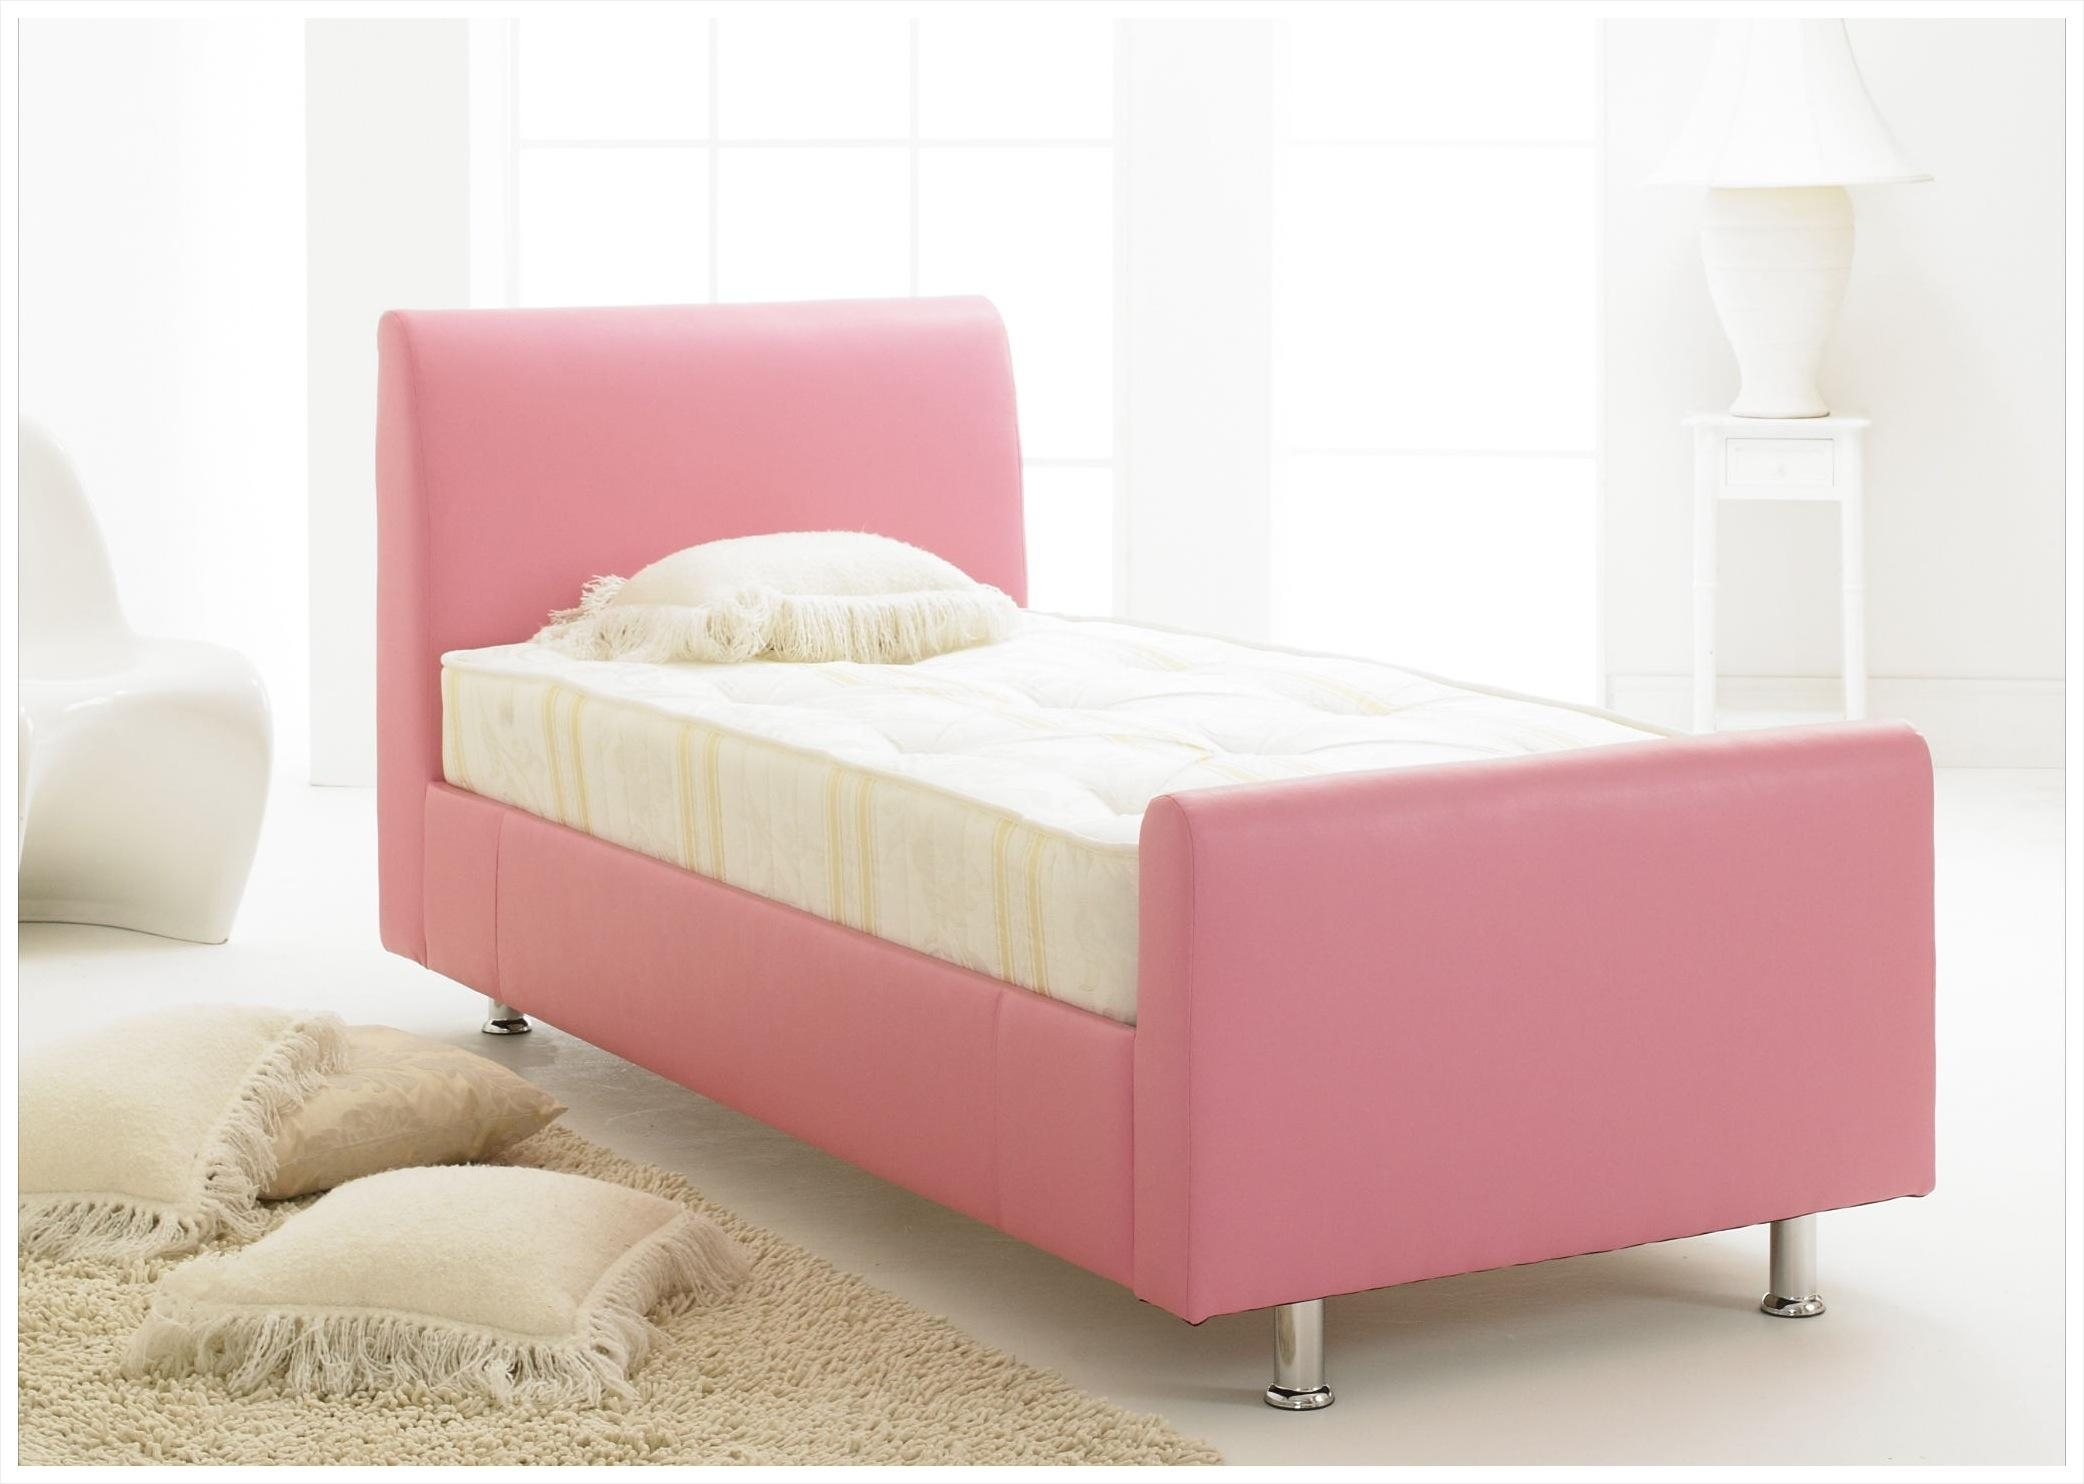 Renovation Small Beds Pink Bed Ideas Scheme White Mattress Sofa Intended For Small Bedroom Sofas (Image 15 of 20)